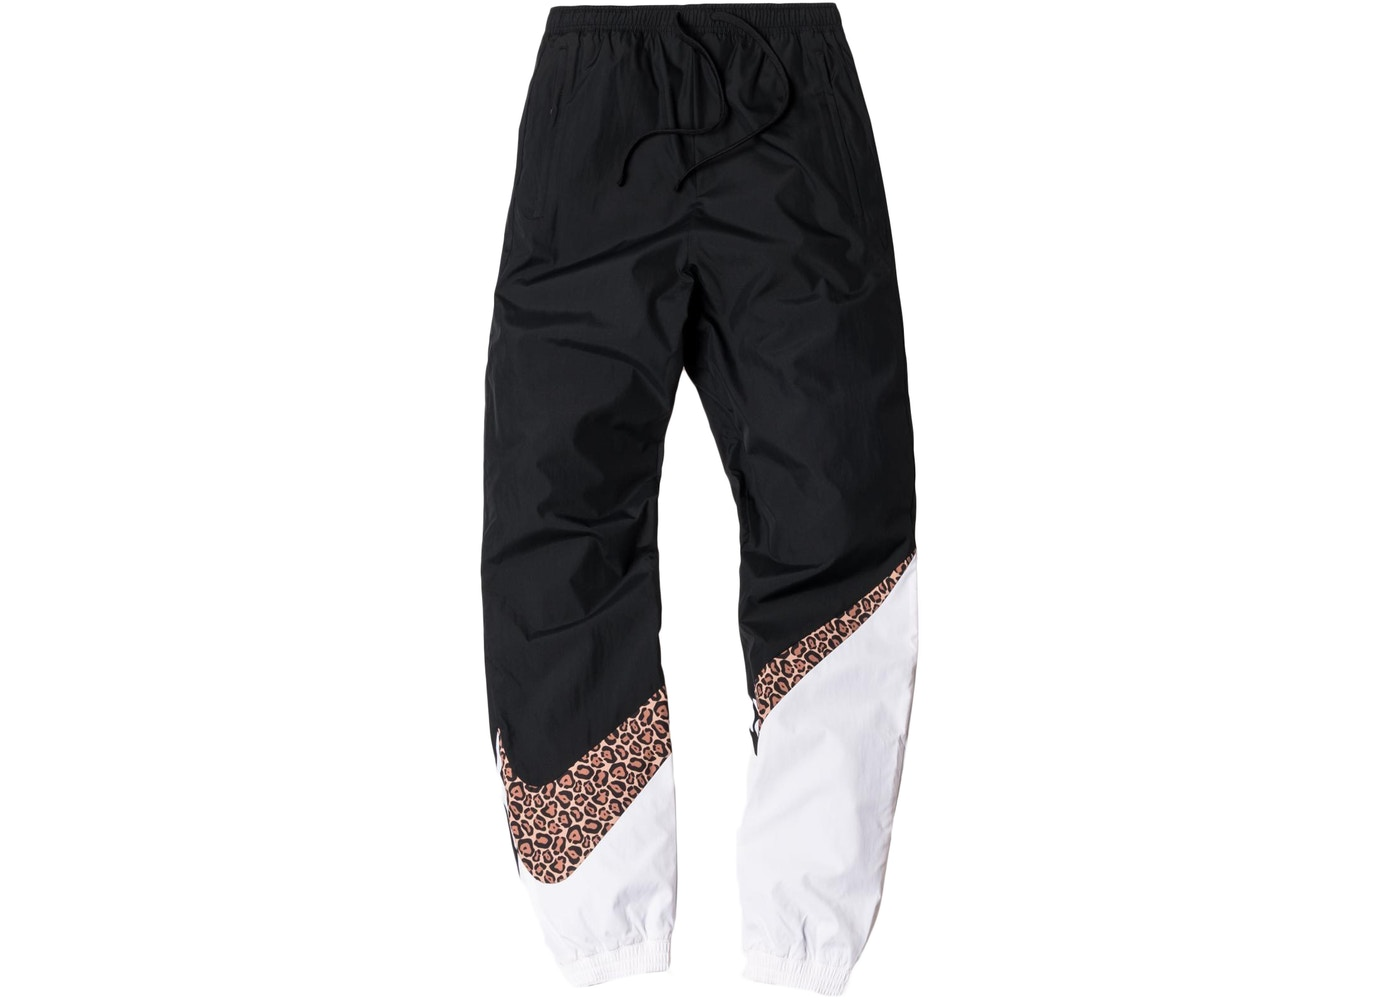 02b99e00eb07 Kith Nike Big Swoosh Pants Black White - FW17